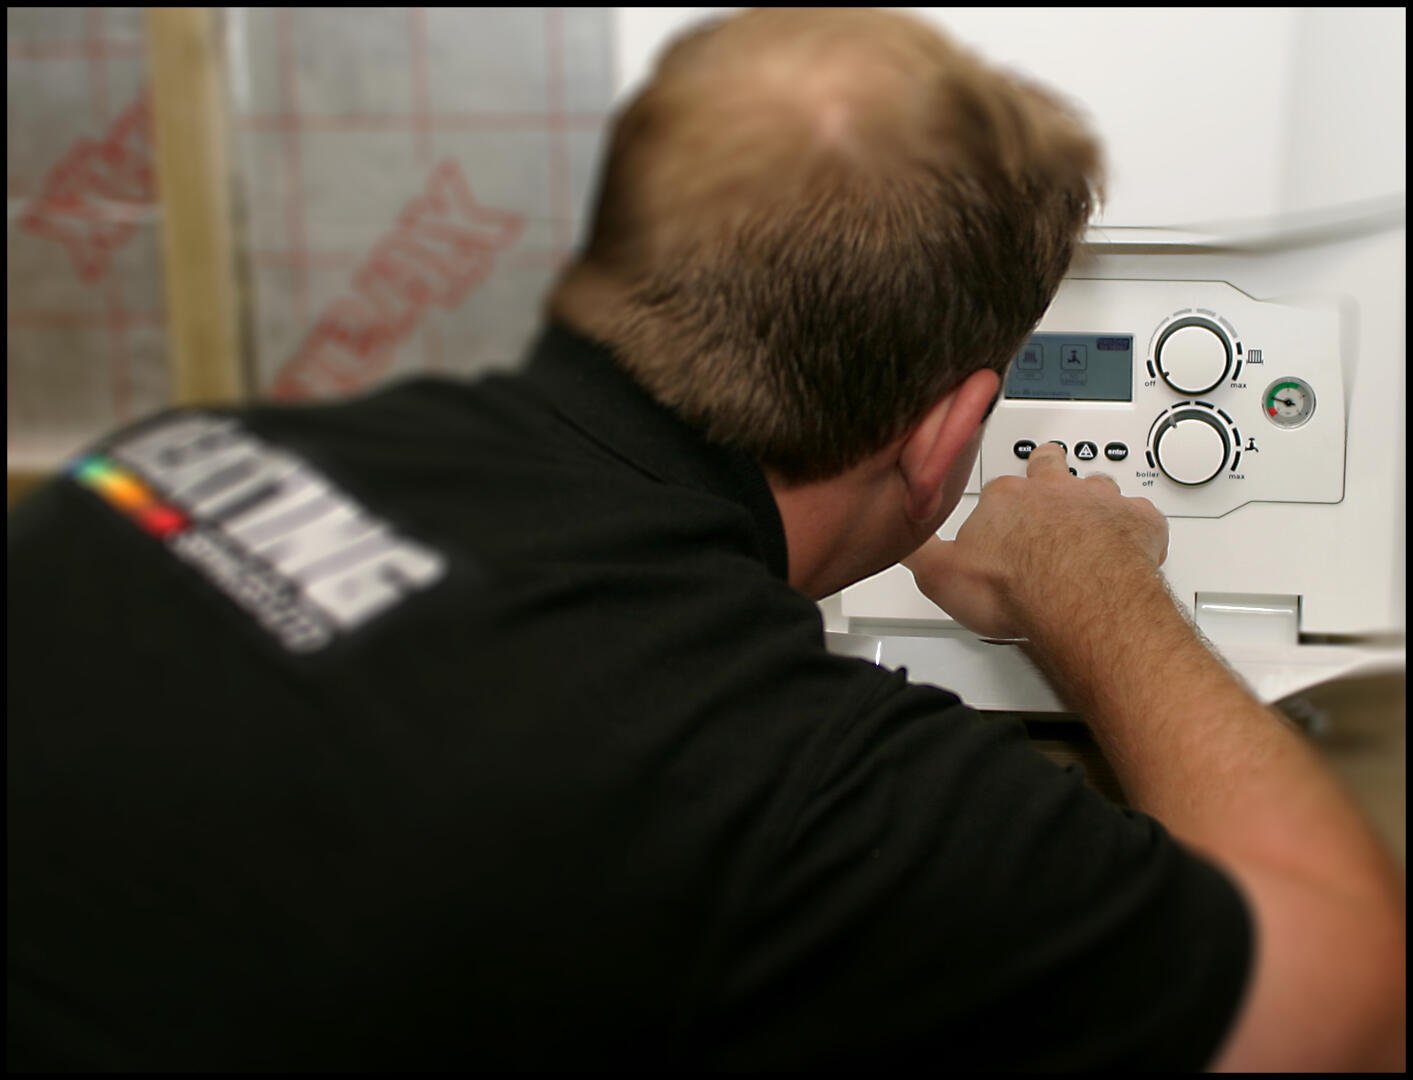 Plumbers Boiler Installation Service and Repairs and Bathroom Design and Installation by Heating Services Ltd in Sevenoaks (5)